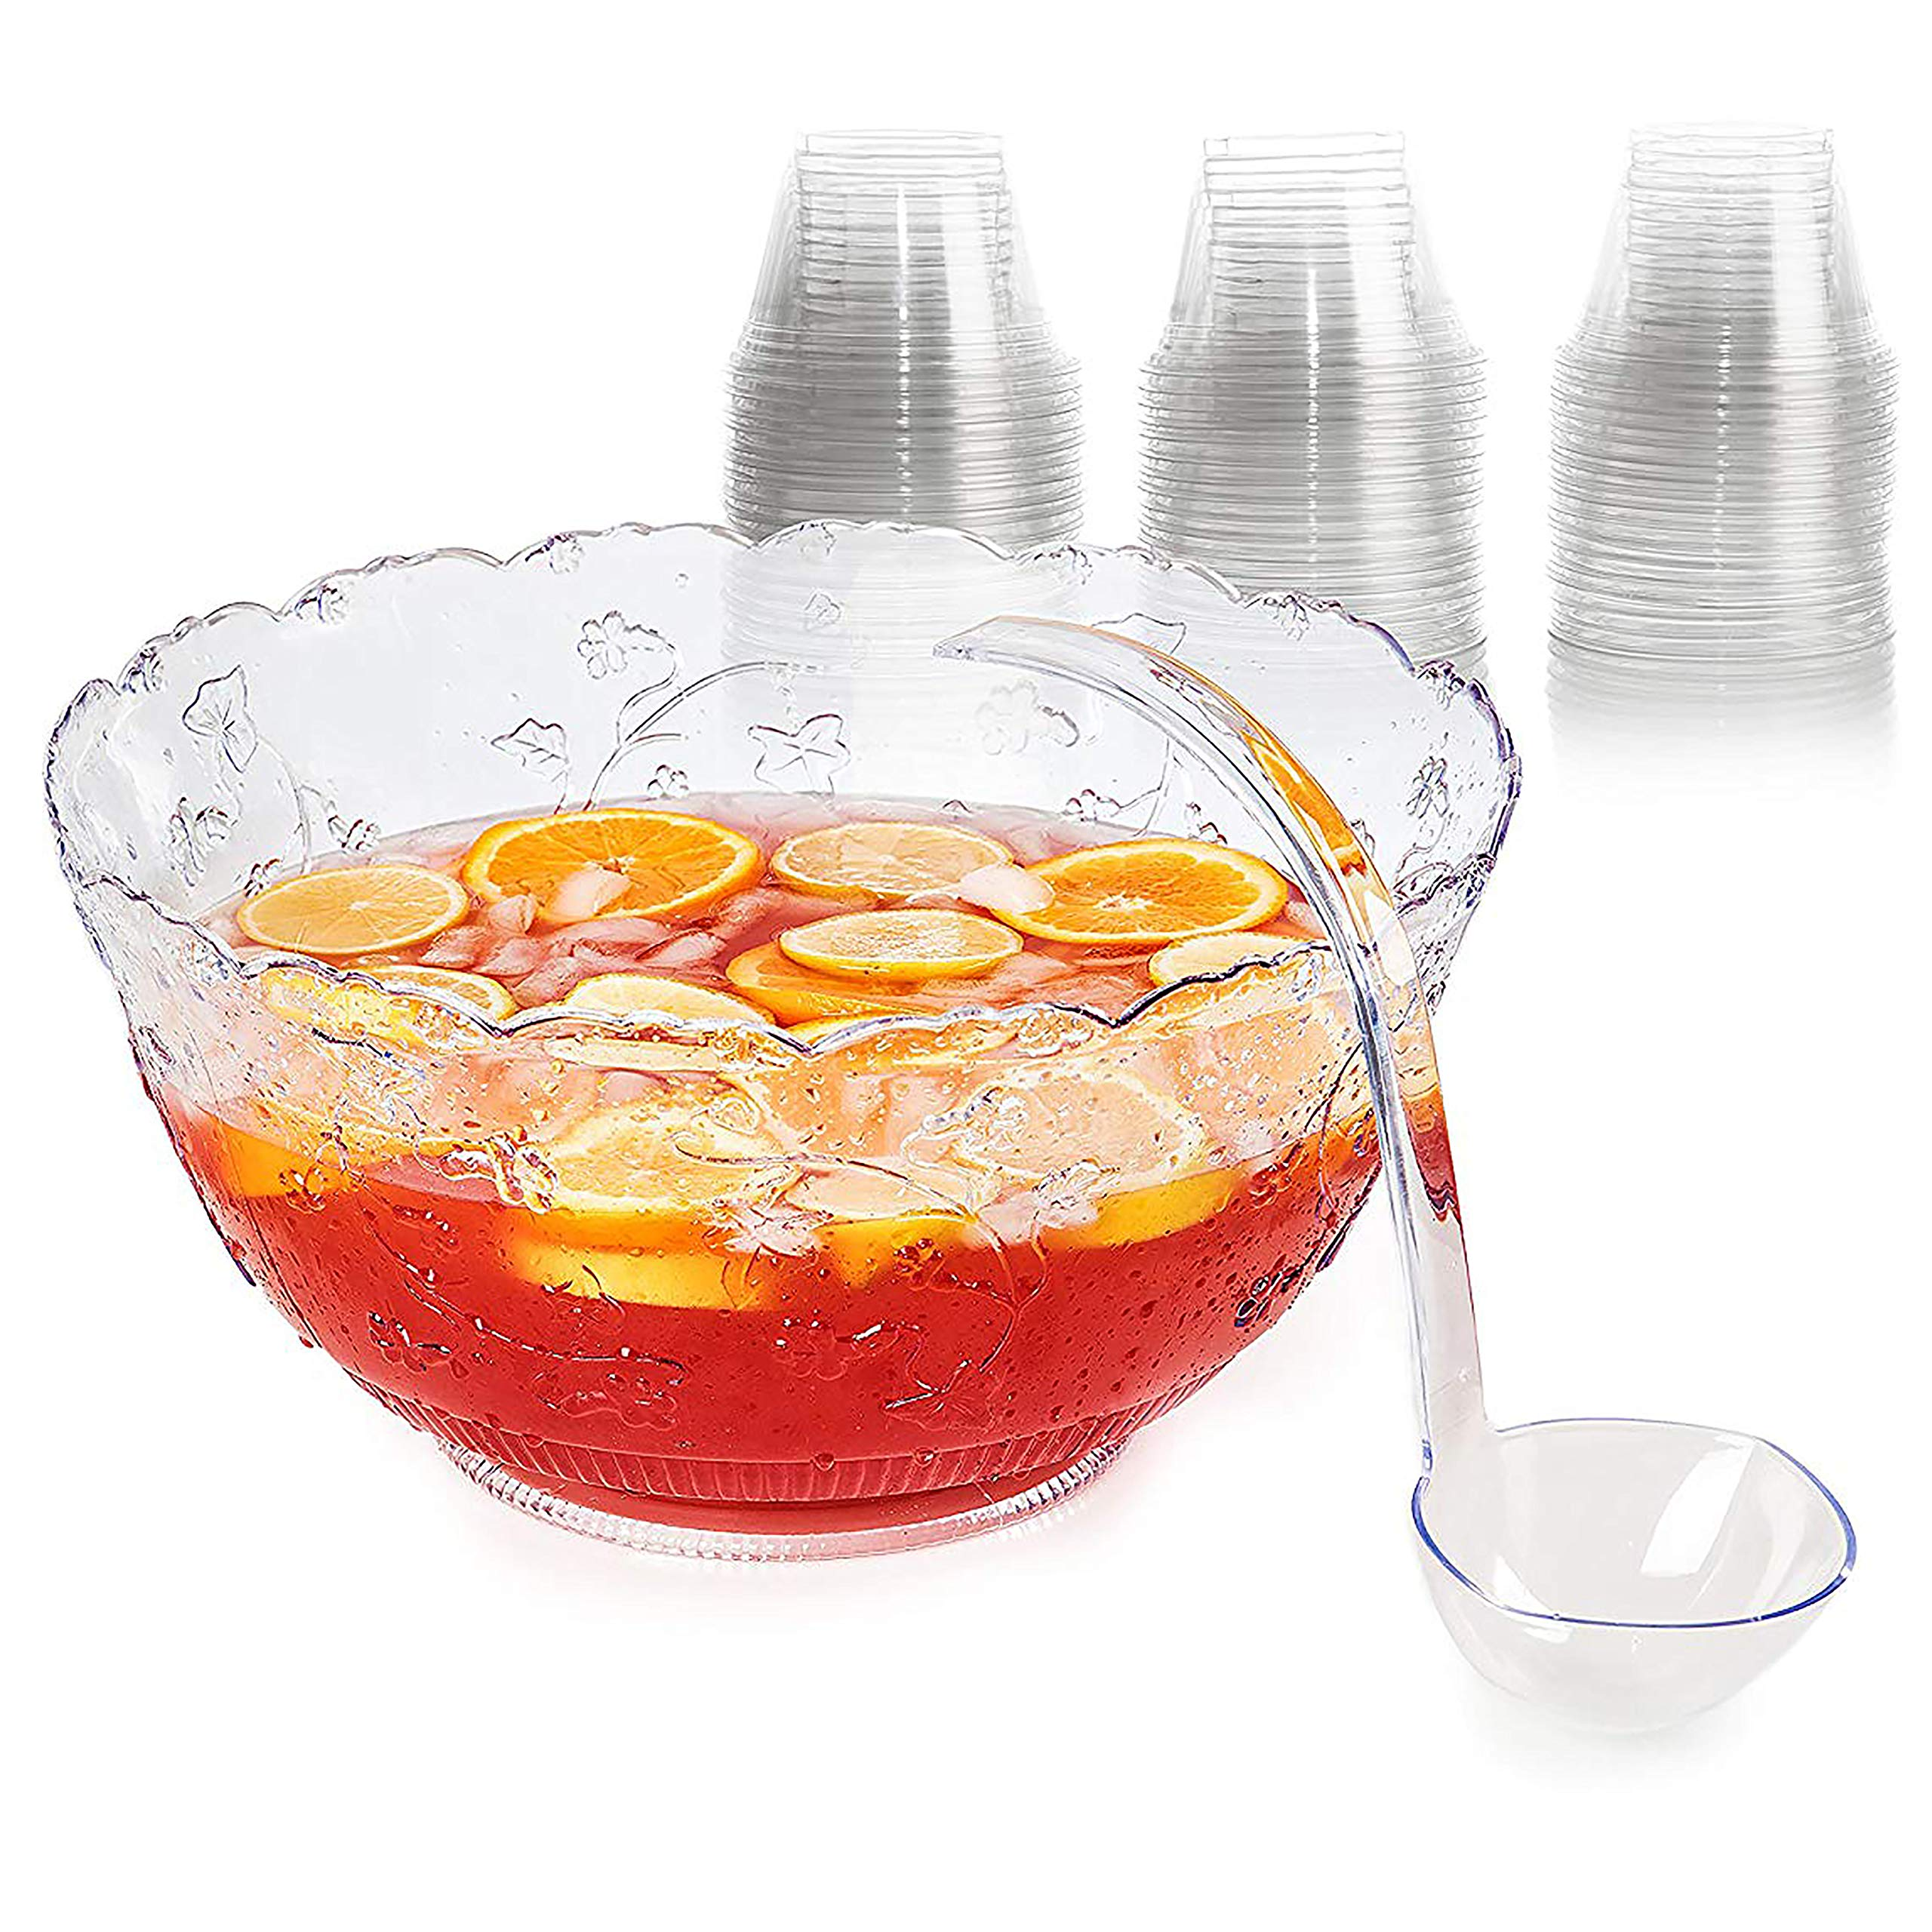 Set of Plastic Punch Bowl, Ladle, and Cups - Large 2 gallon Bowl 5 oz Punch Ladle and 9 oz Disposable Clear party punch Cups by Upper Midland Products